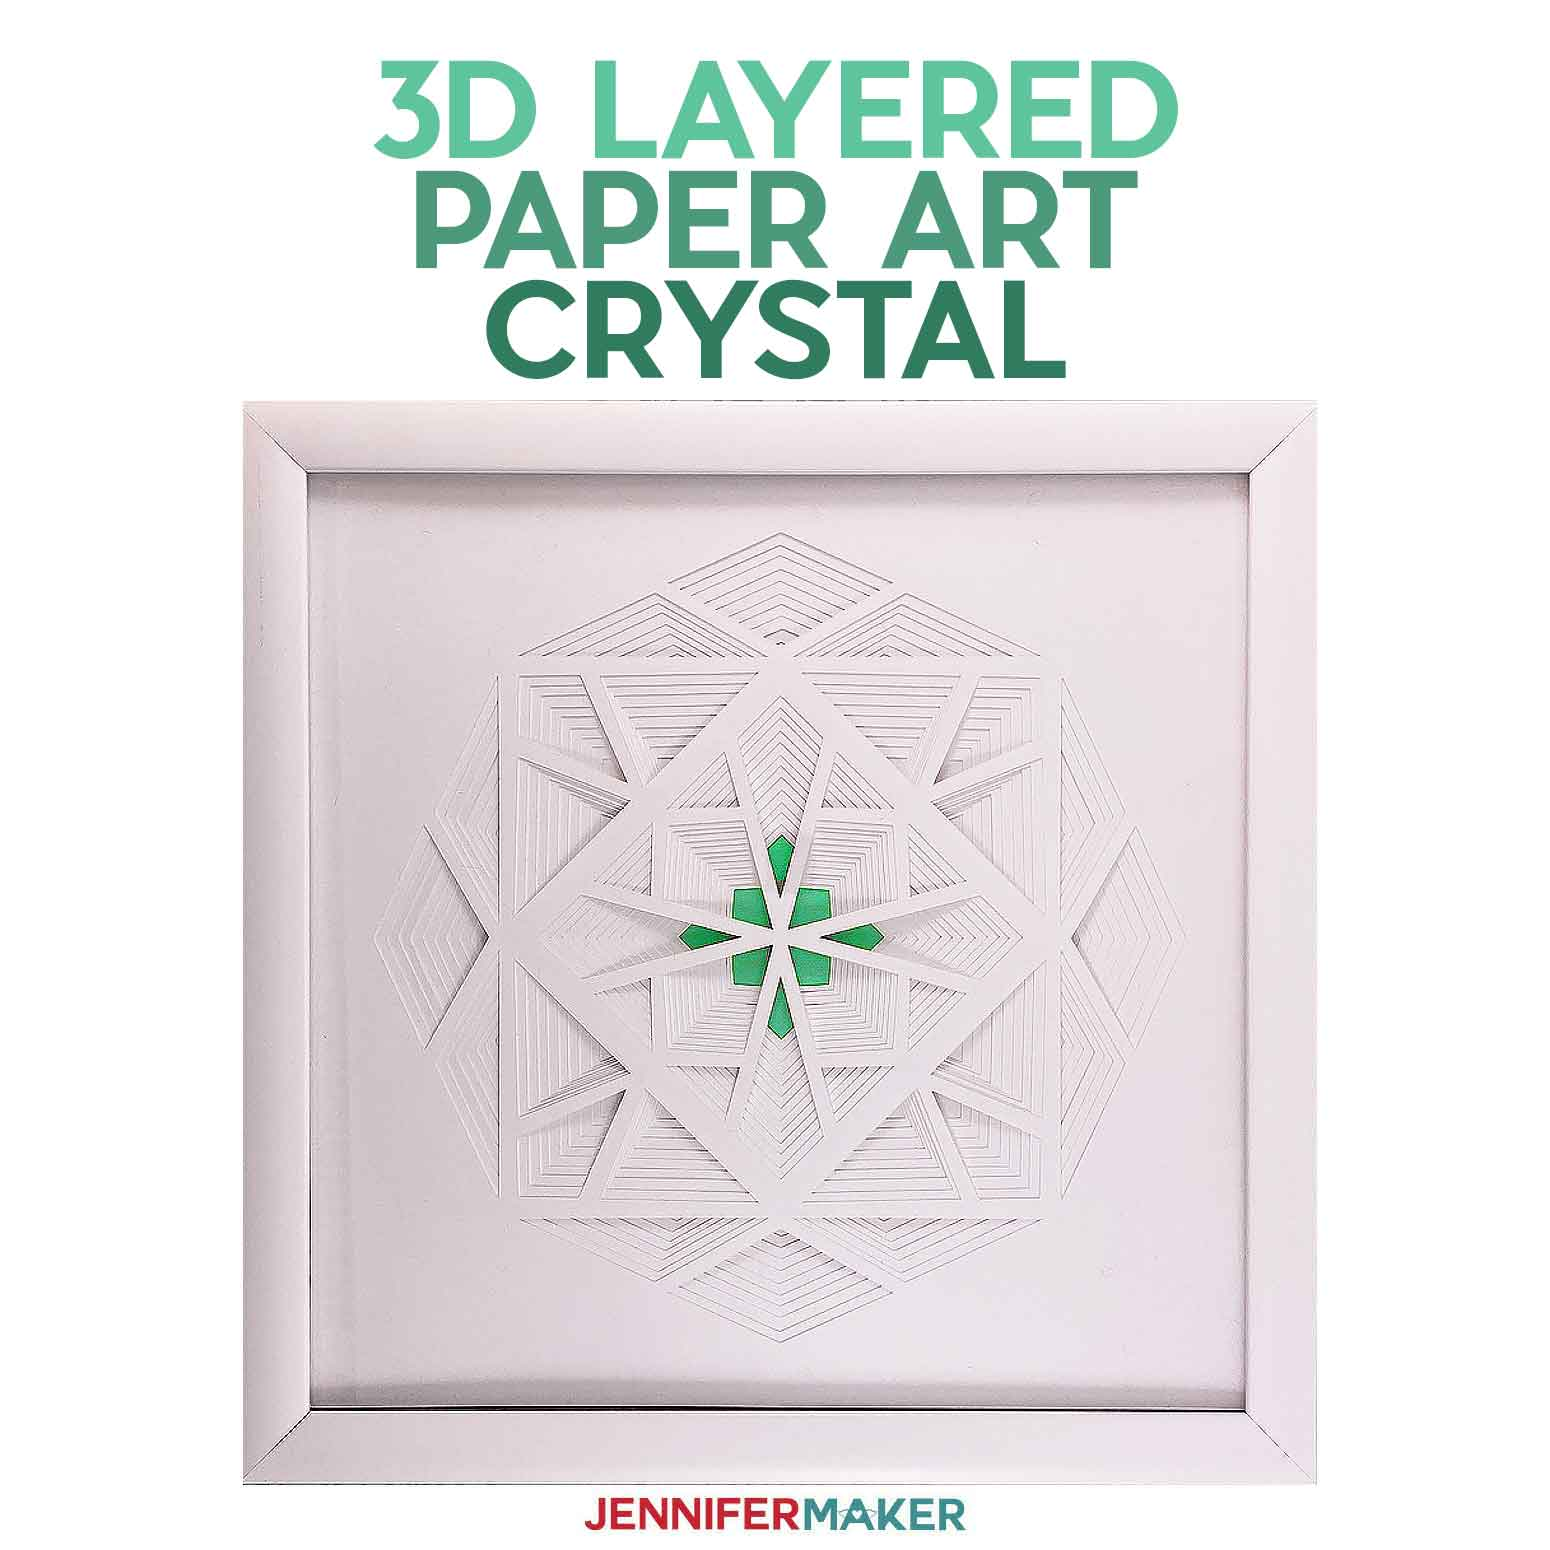 3D Layered Cut Art: The Crystal / Diamond (Series 2 of 4)